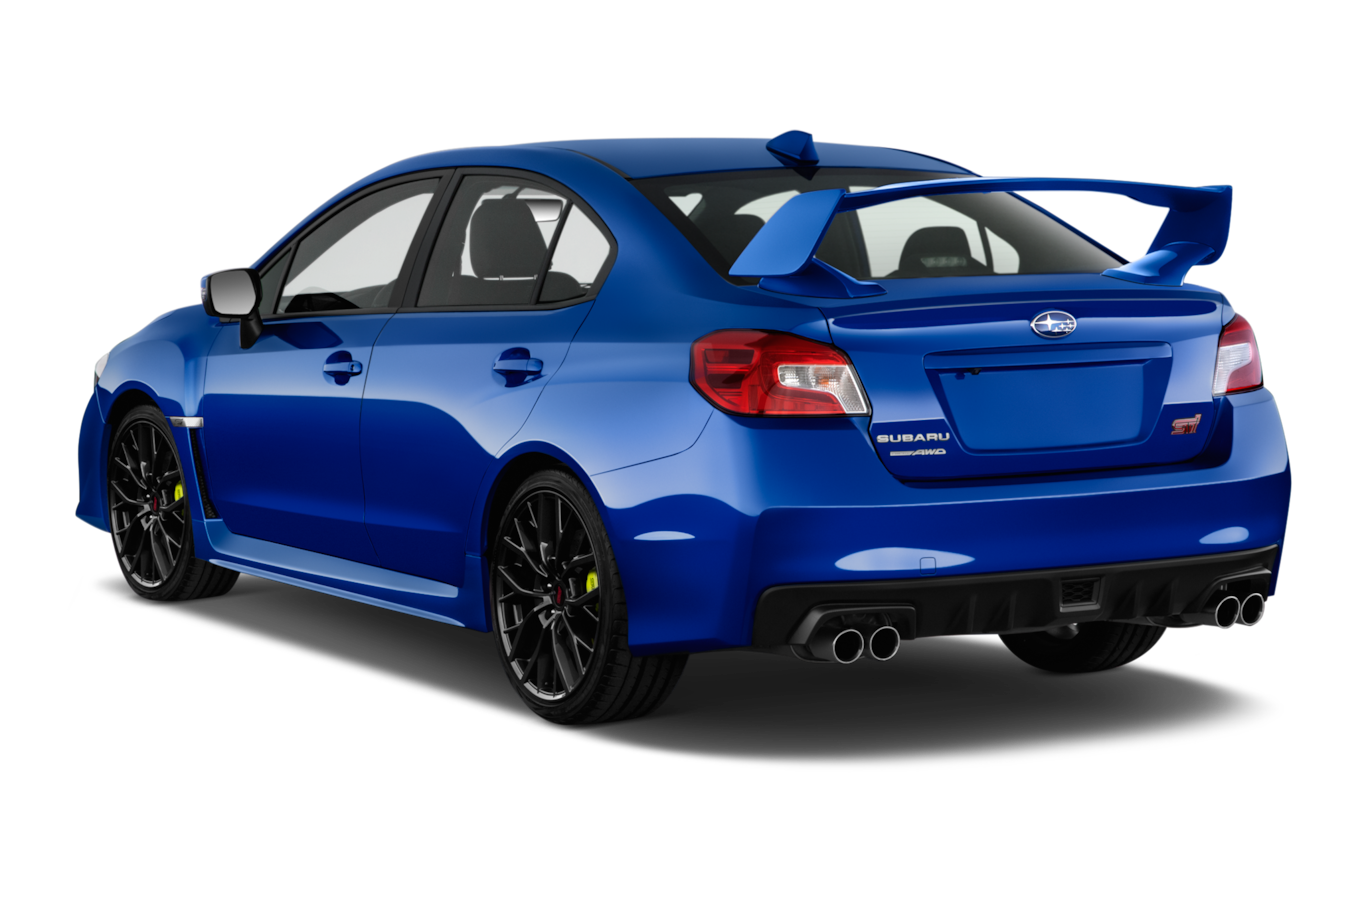 79 The Best Subaru Impreza Sti 2019 Style